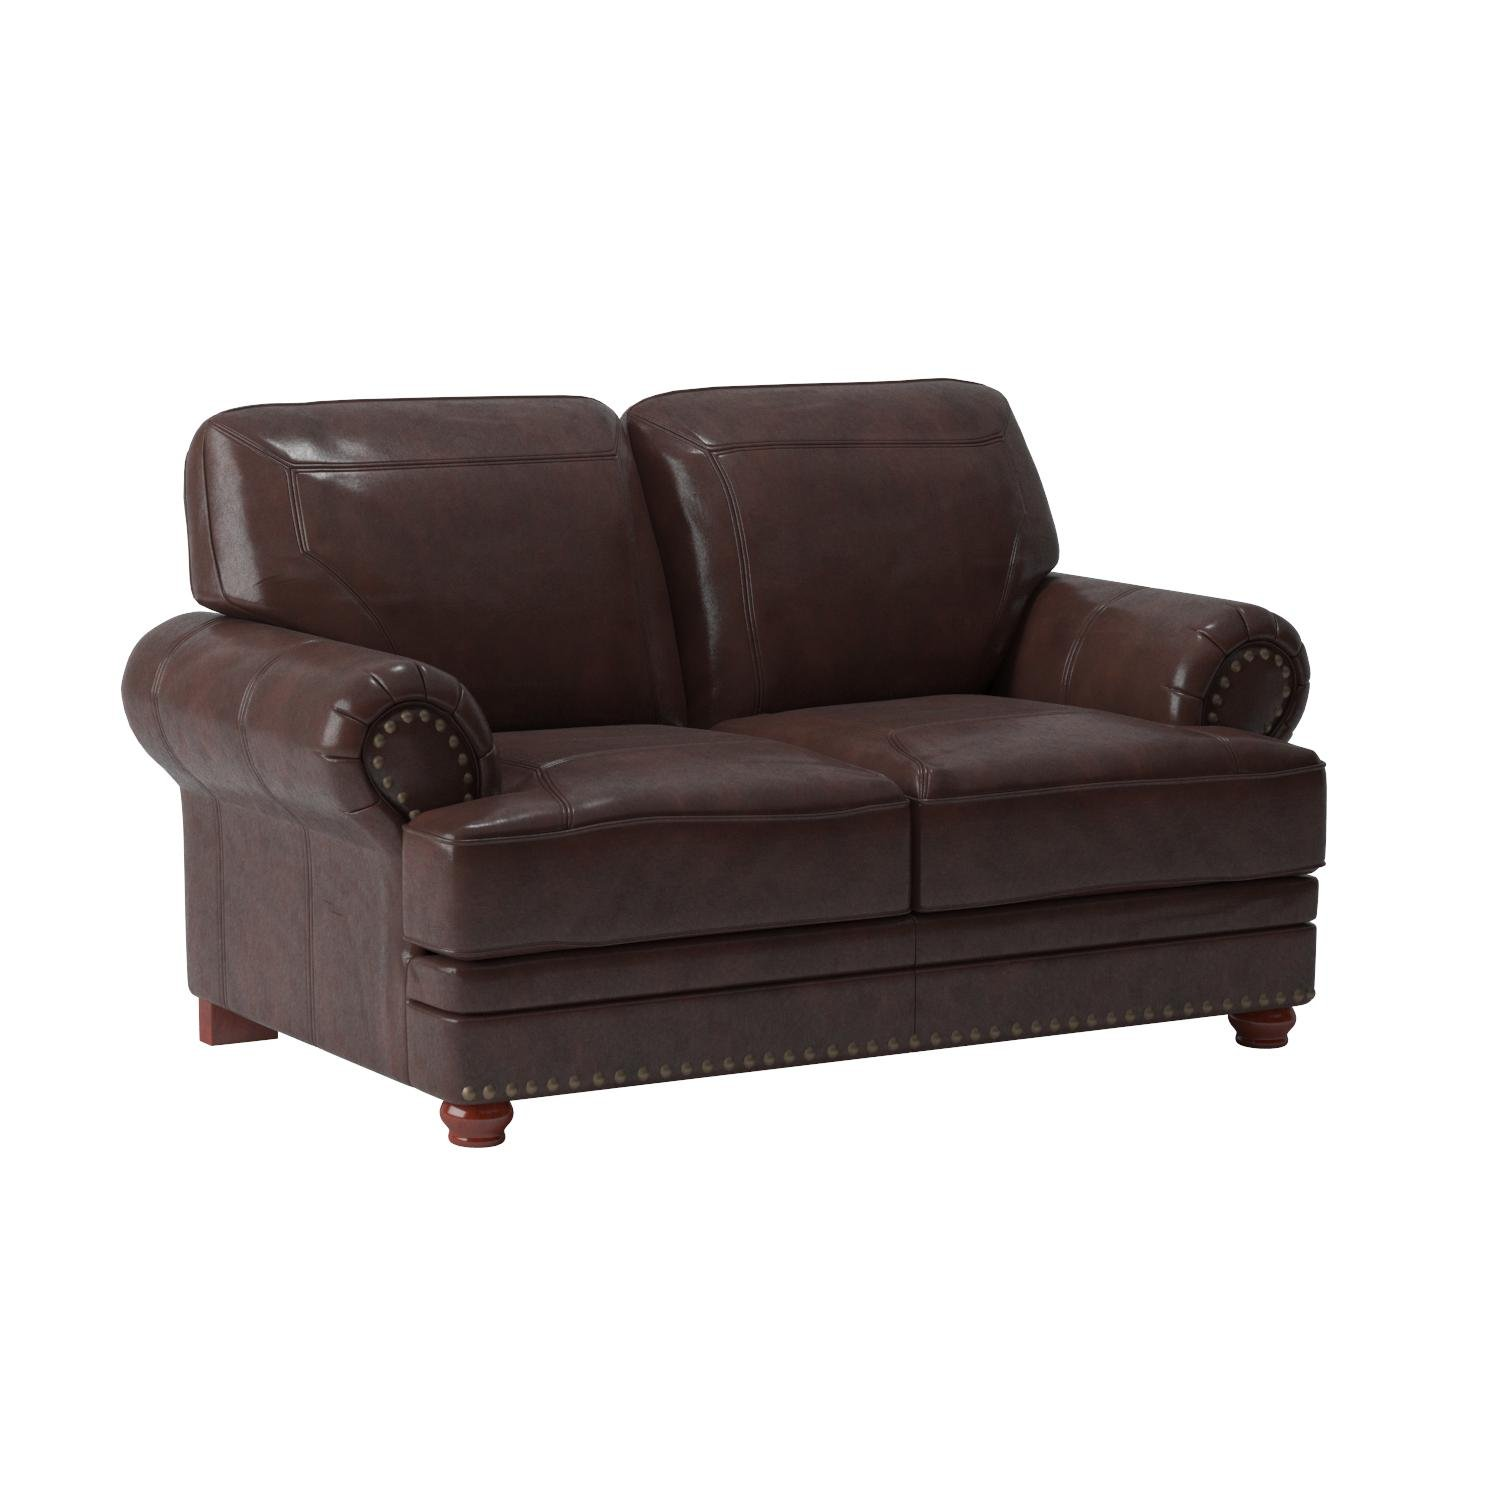 Coaster Home Furnishings 504412 Traditional Loveseat, Brown